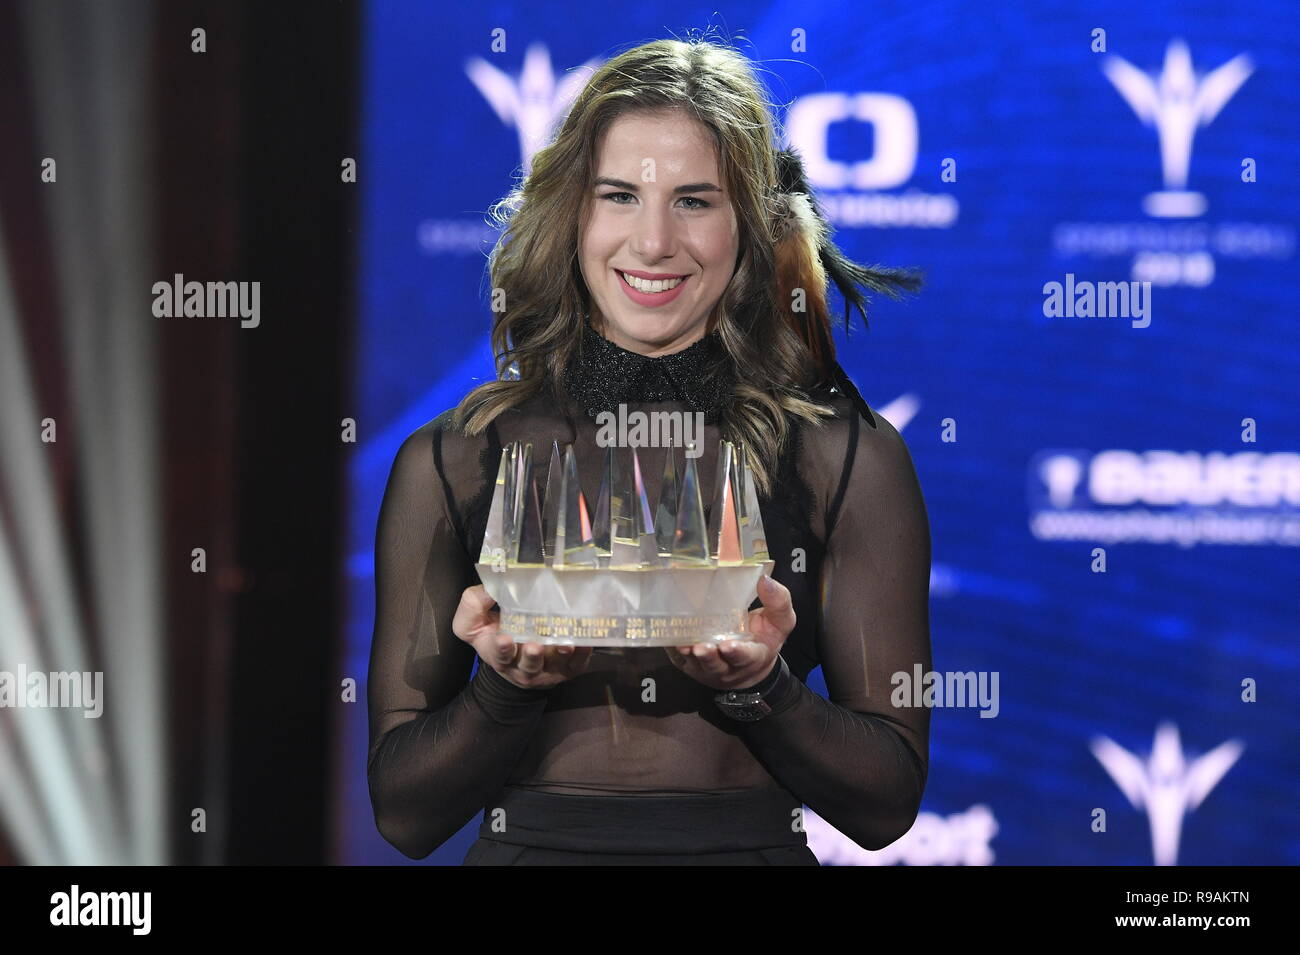 Prague, Czech Republic. 21st Dec, 2018. Snowboarder and skier Ester Ledecka, 23, a double Olympic winner, became the Czech Champion of Sports 2018, winning the annual poll of sport journalists much ahead of other athletes, the organisers announced at a gala ceremony in Prague, Czech Republic, December 12, 2018. Credit: Ondrej Deml/CTK Photo/Alamy Live News - Stock Image